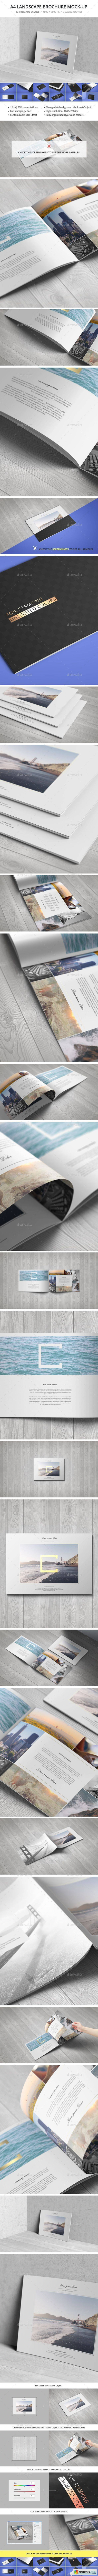 A4 Landscape Brochure Mock-Up 12135636